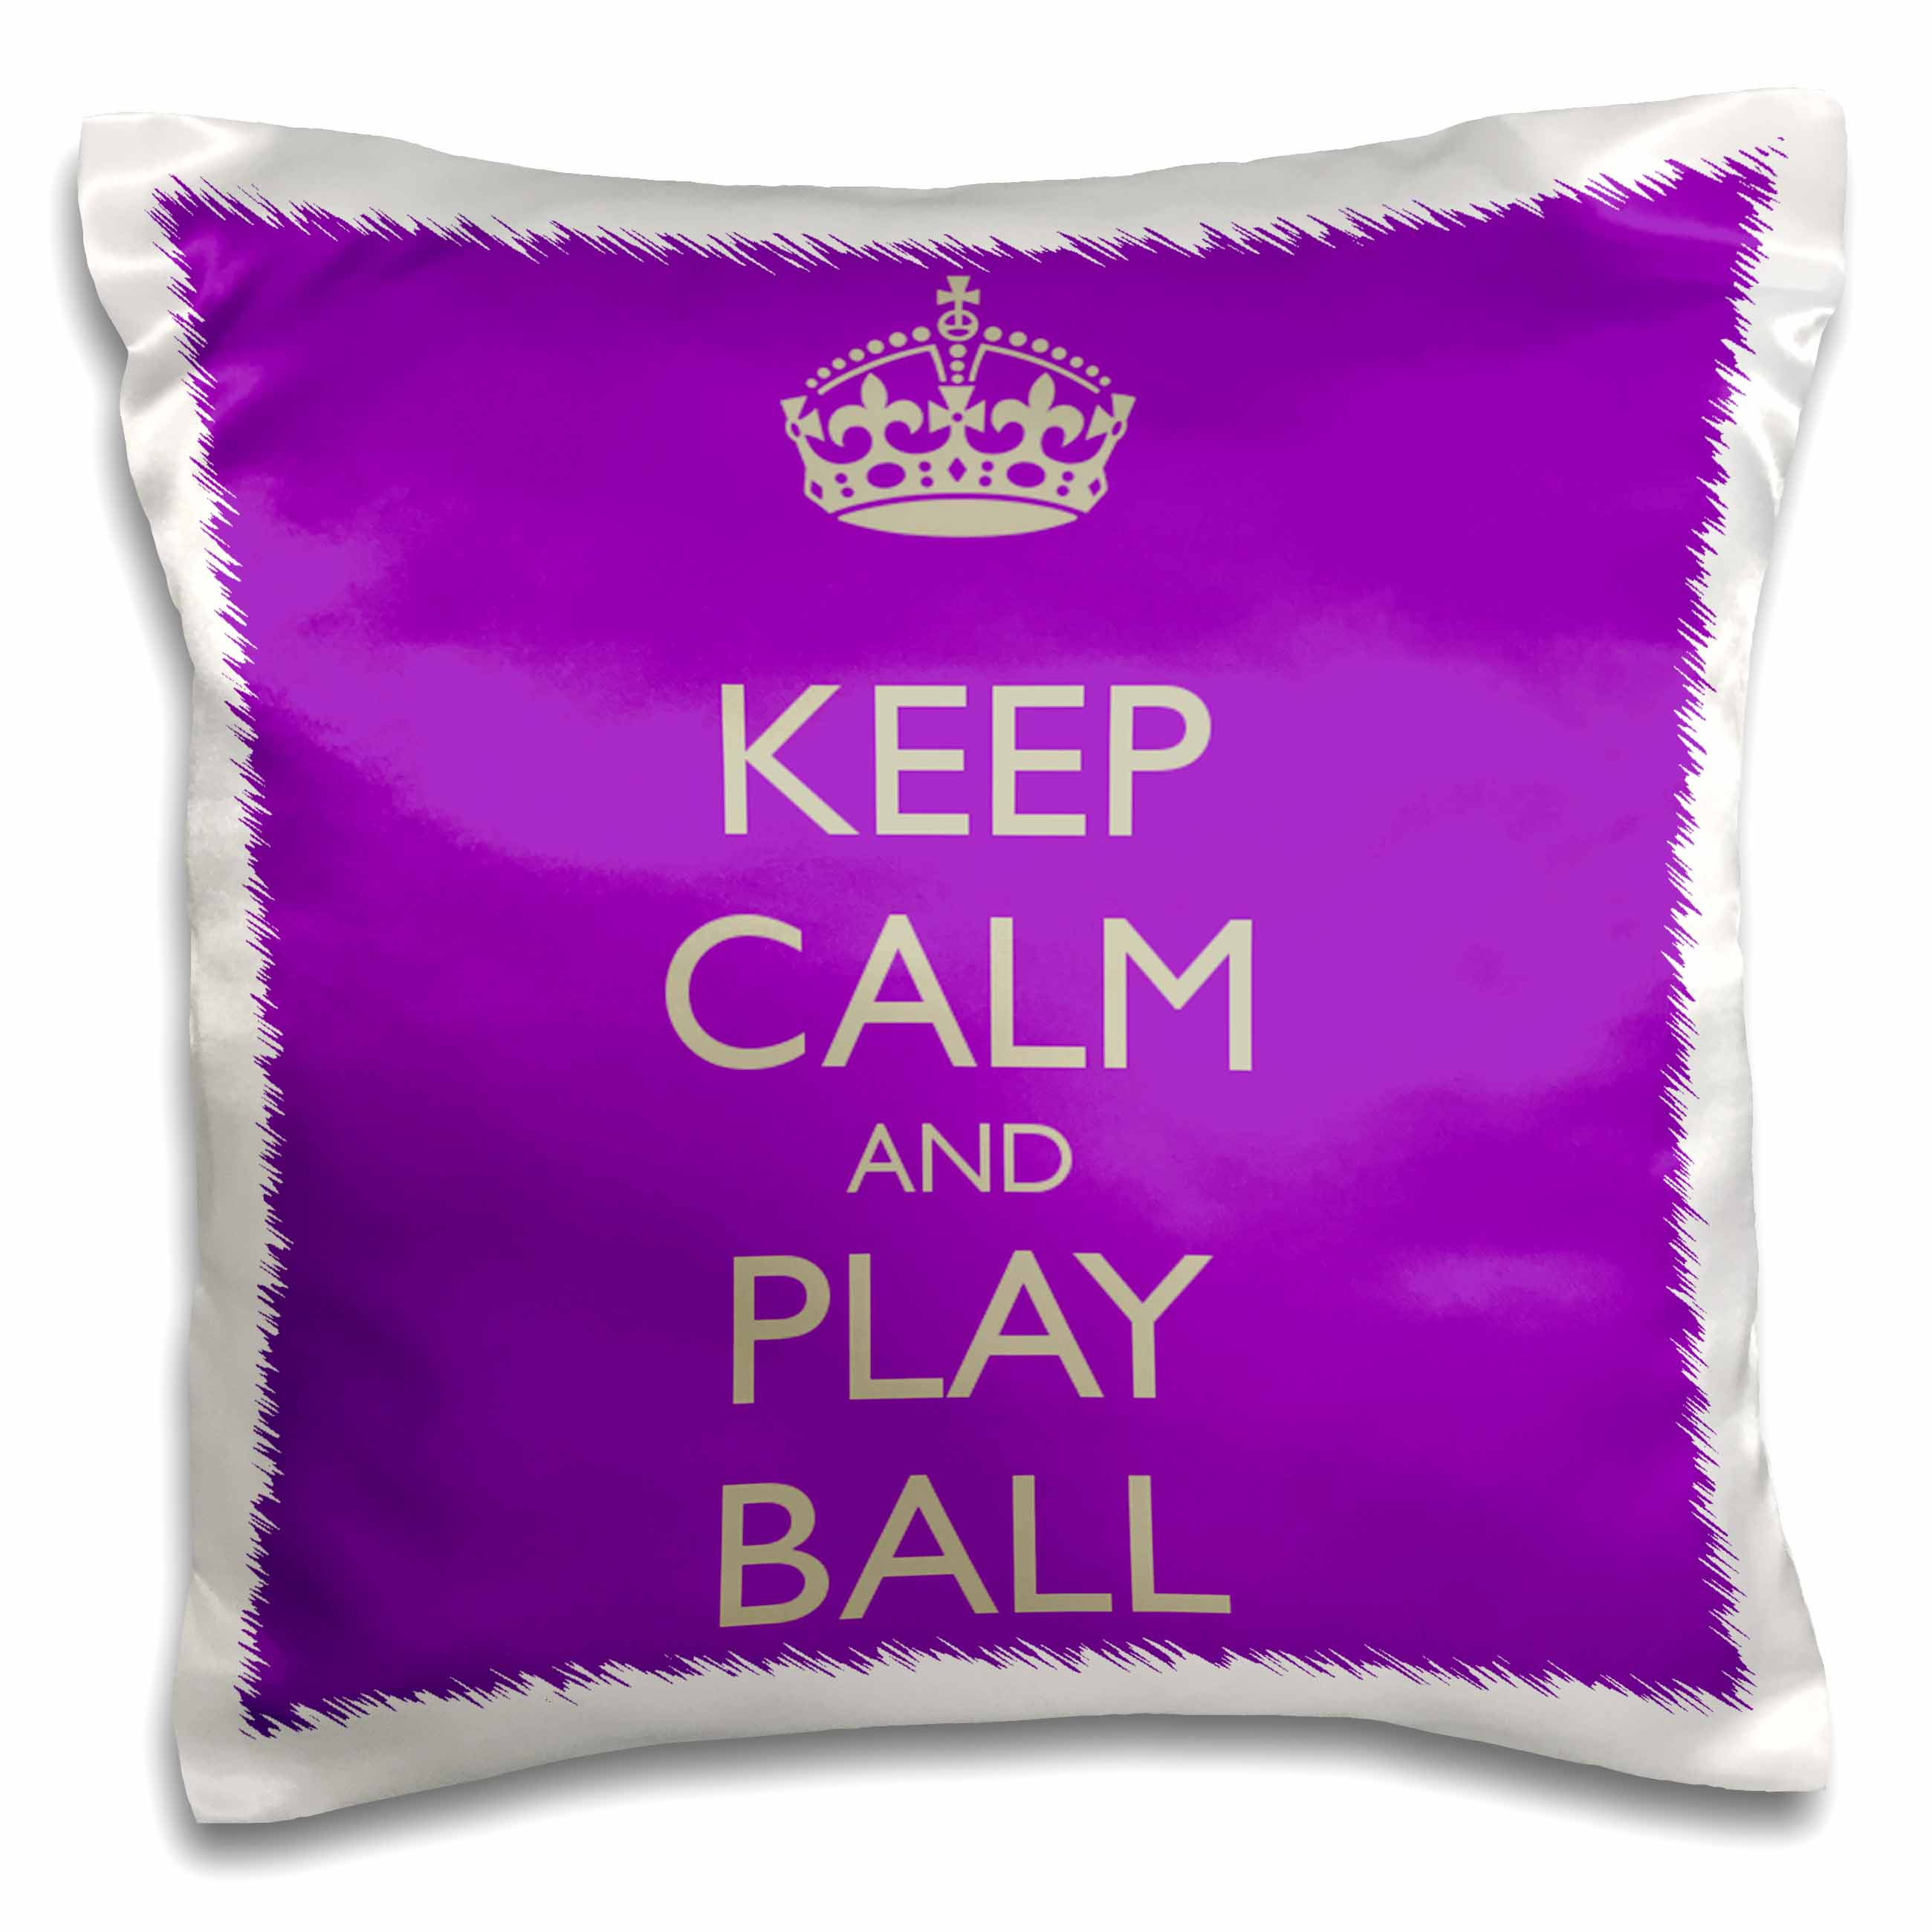 3dRose Keep calm and play ball, Purple and Silver, Pillow Case, 16 by 16-inch